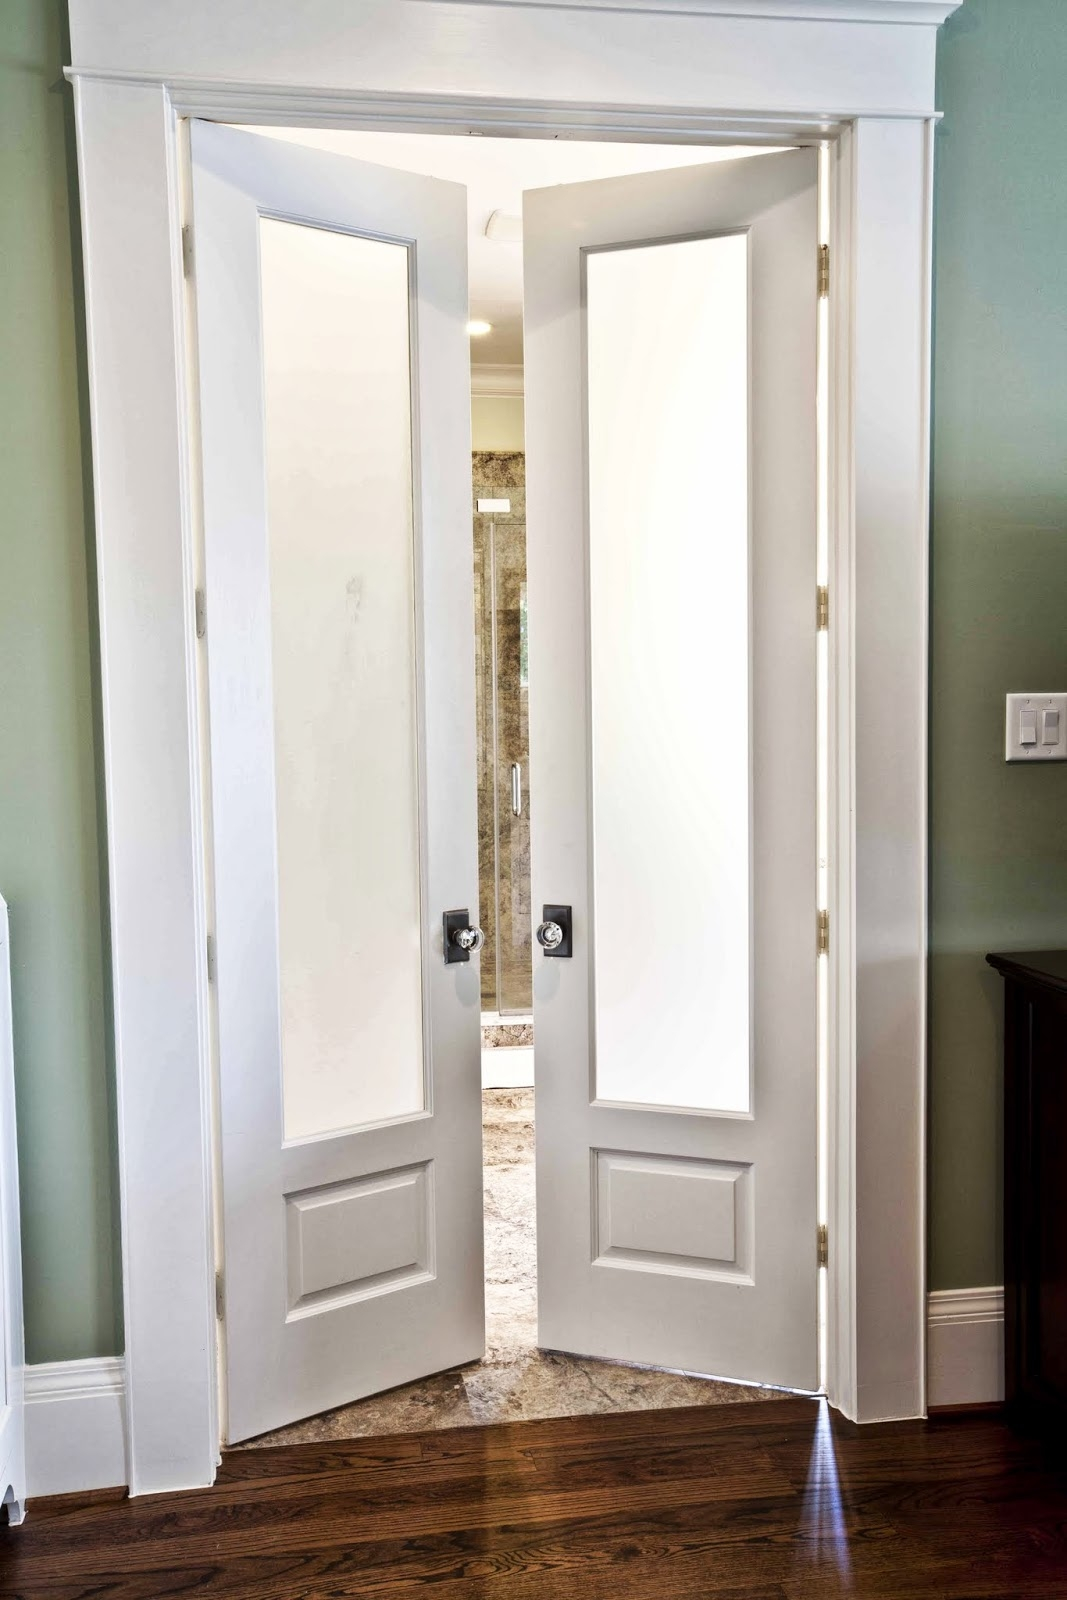 Bathroom Door Open Into Room